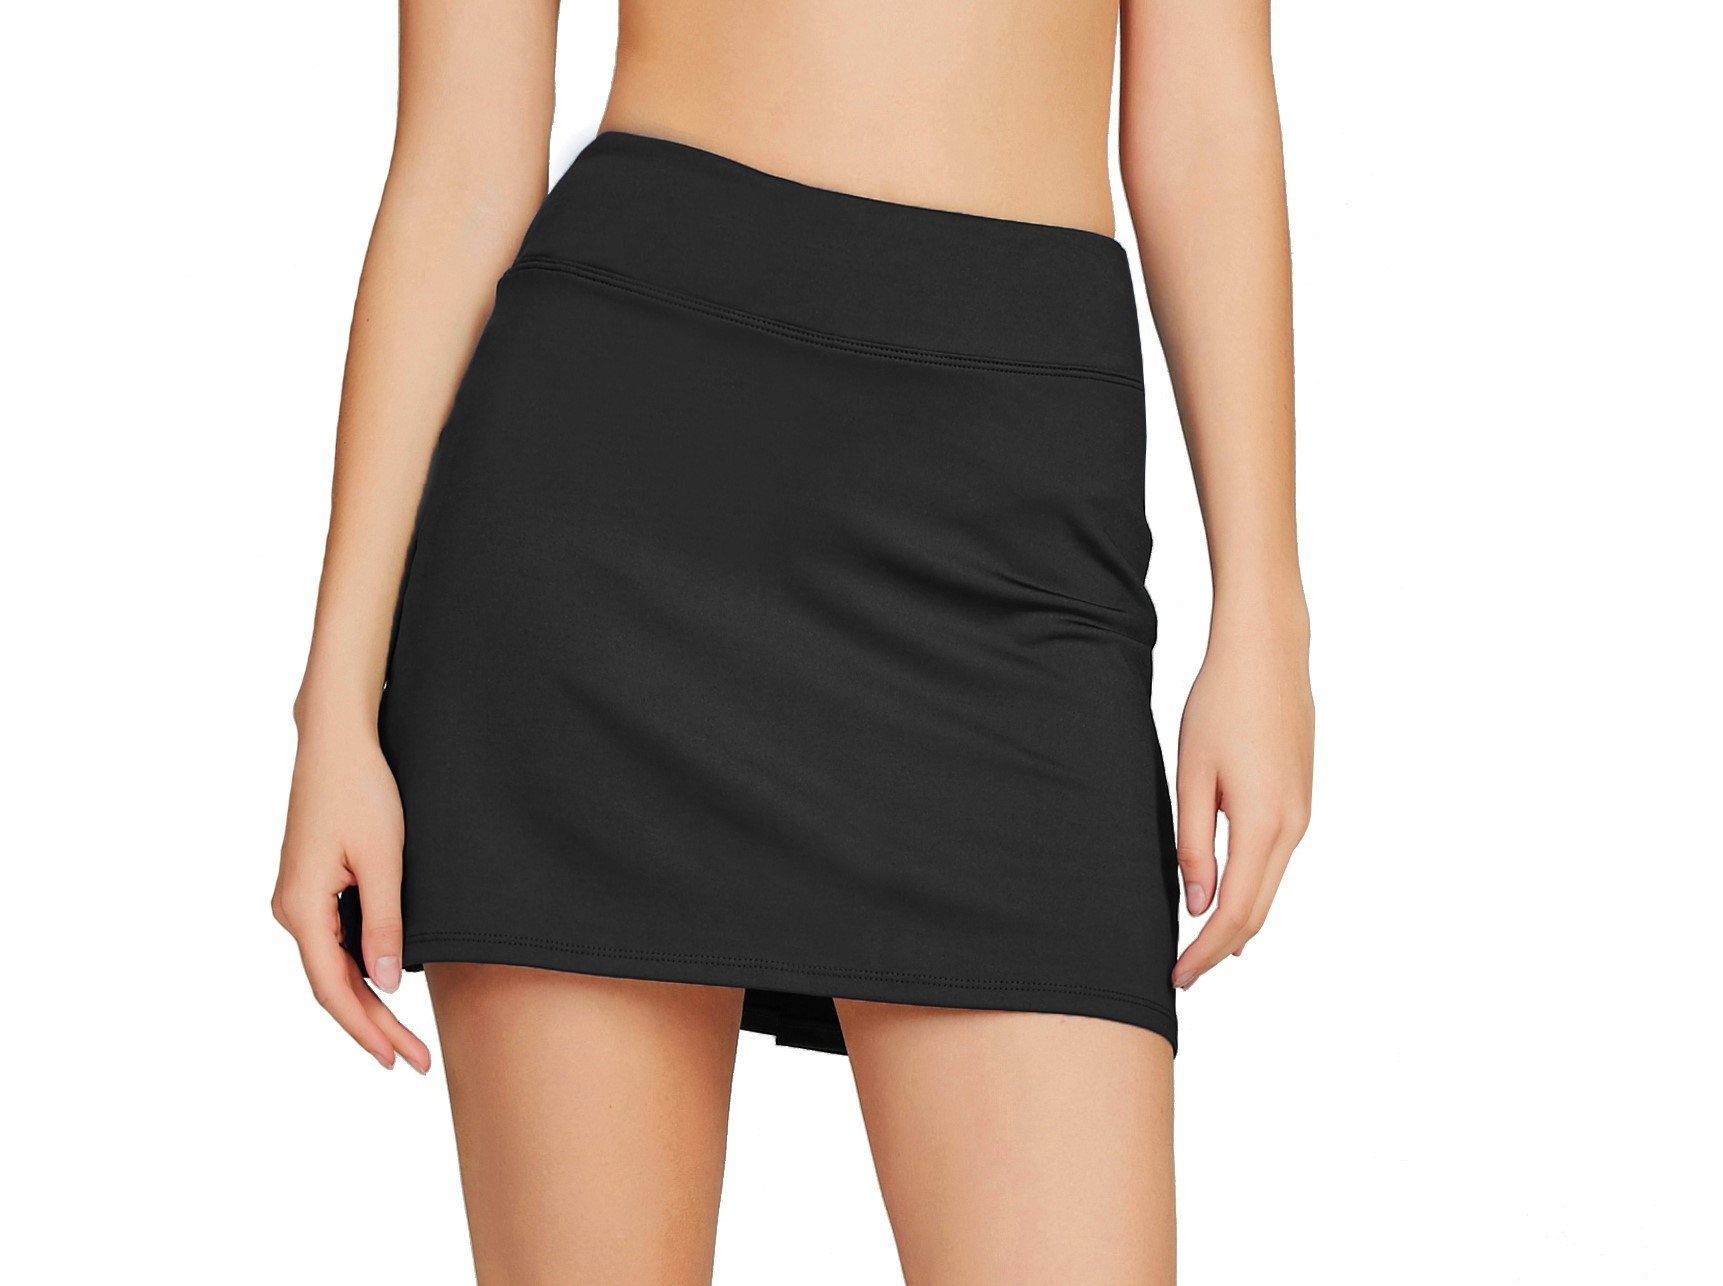 Cityoung Women's Casual Pleated Tennis Golf Skirt with Underneath Shorts Running Skorts bk xs by Cityoung